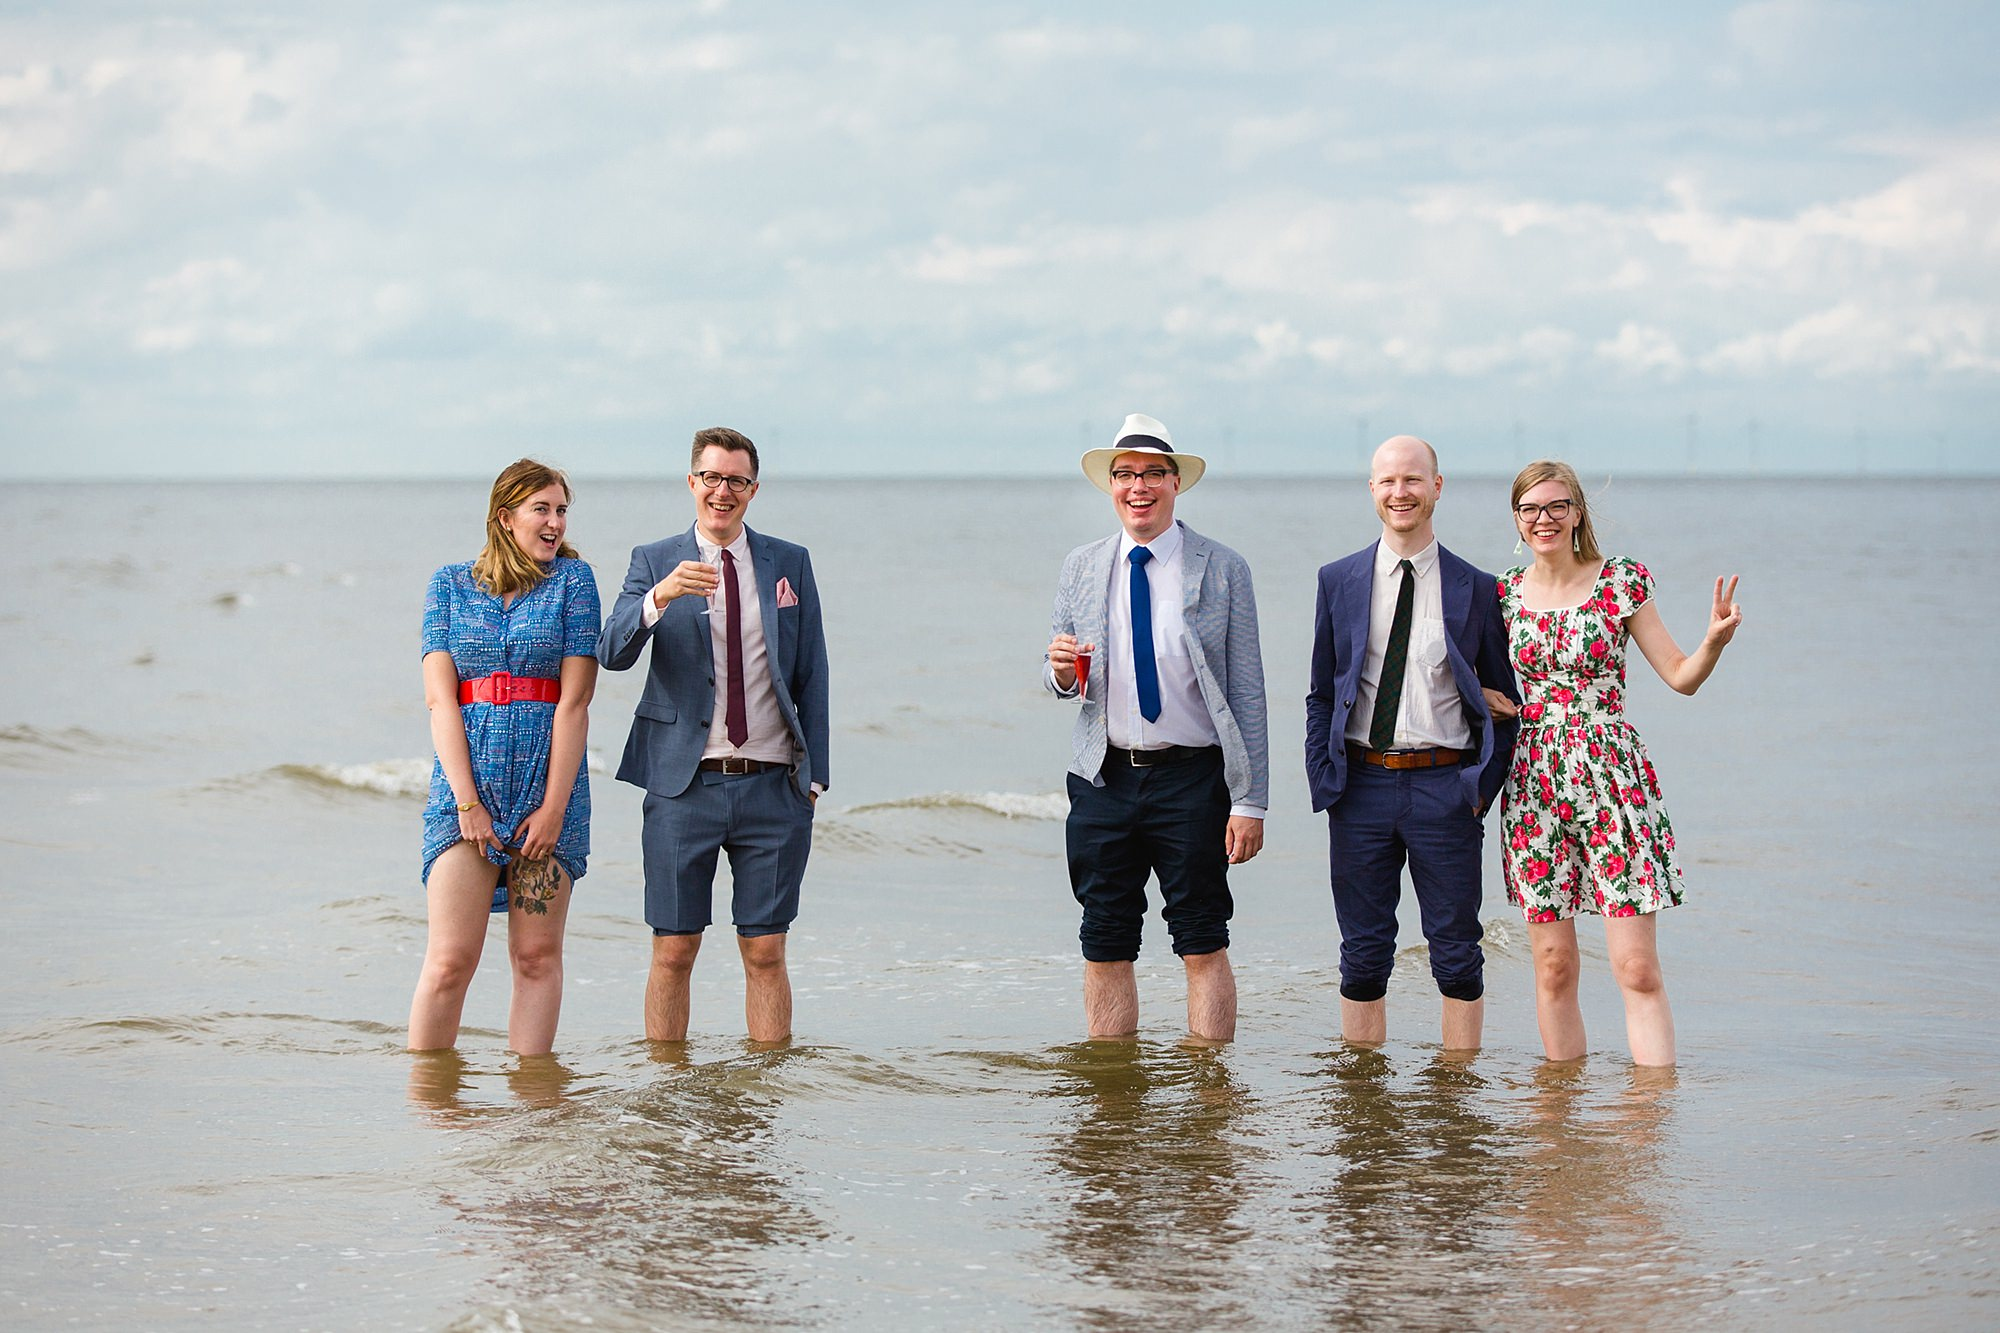 Beacon House wedding guests pose in the sea for a picture